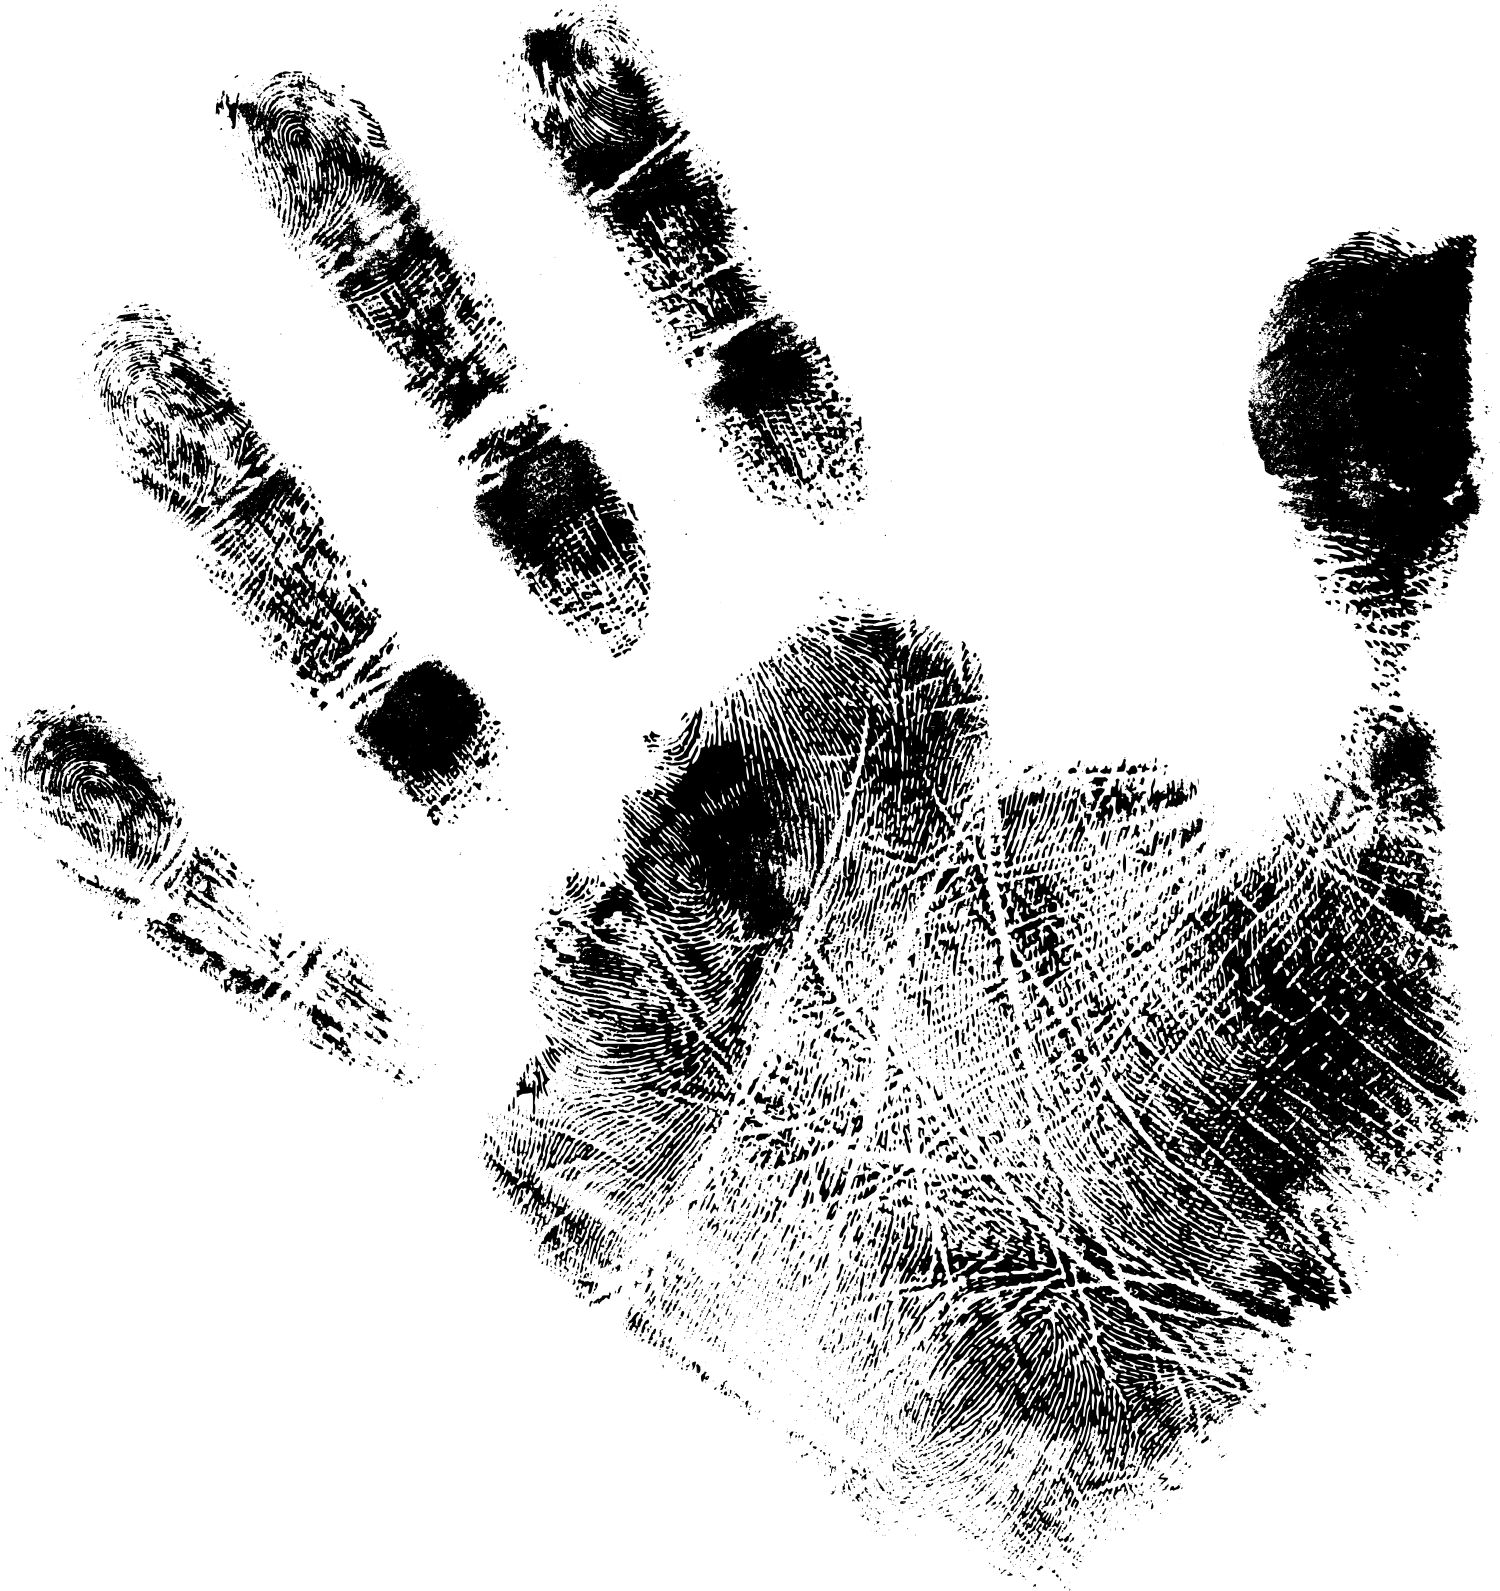 Black background and white hand print clipart picture library library 5 Black Handprints (PNG Transparent) | OnlyGFX.com picture library library